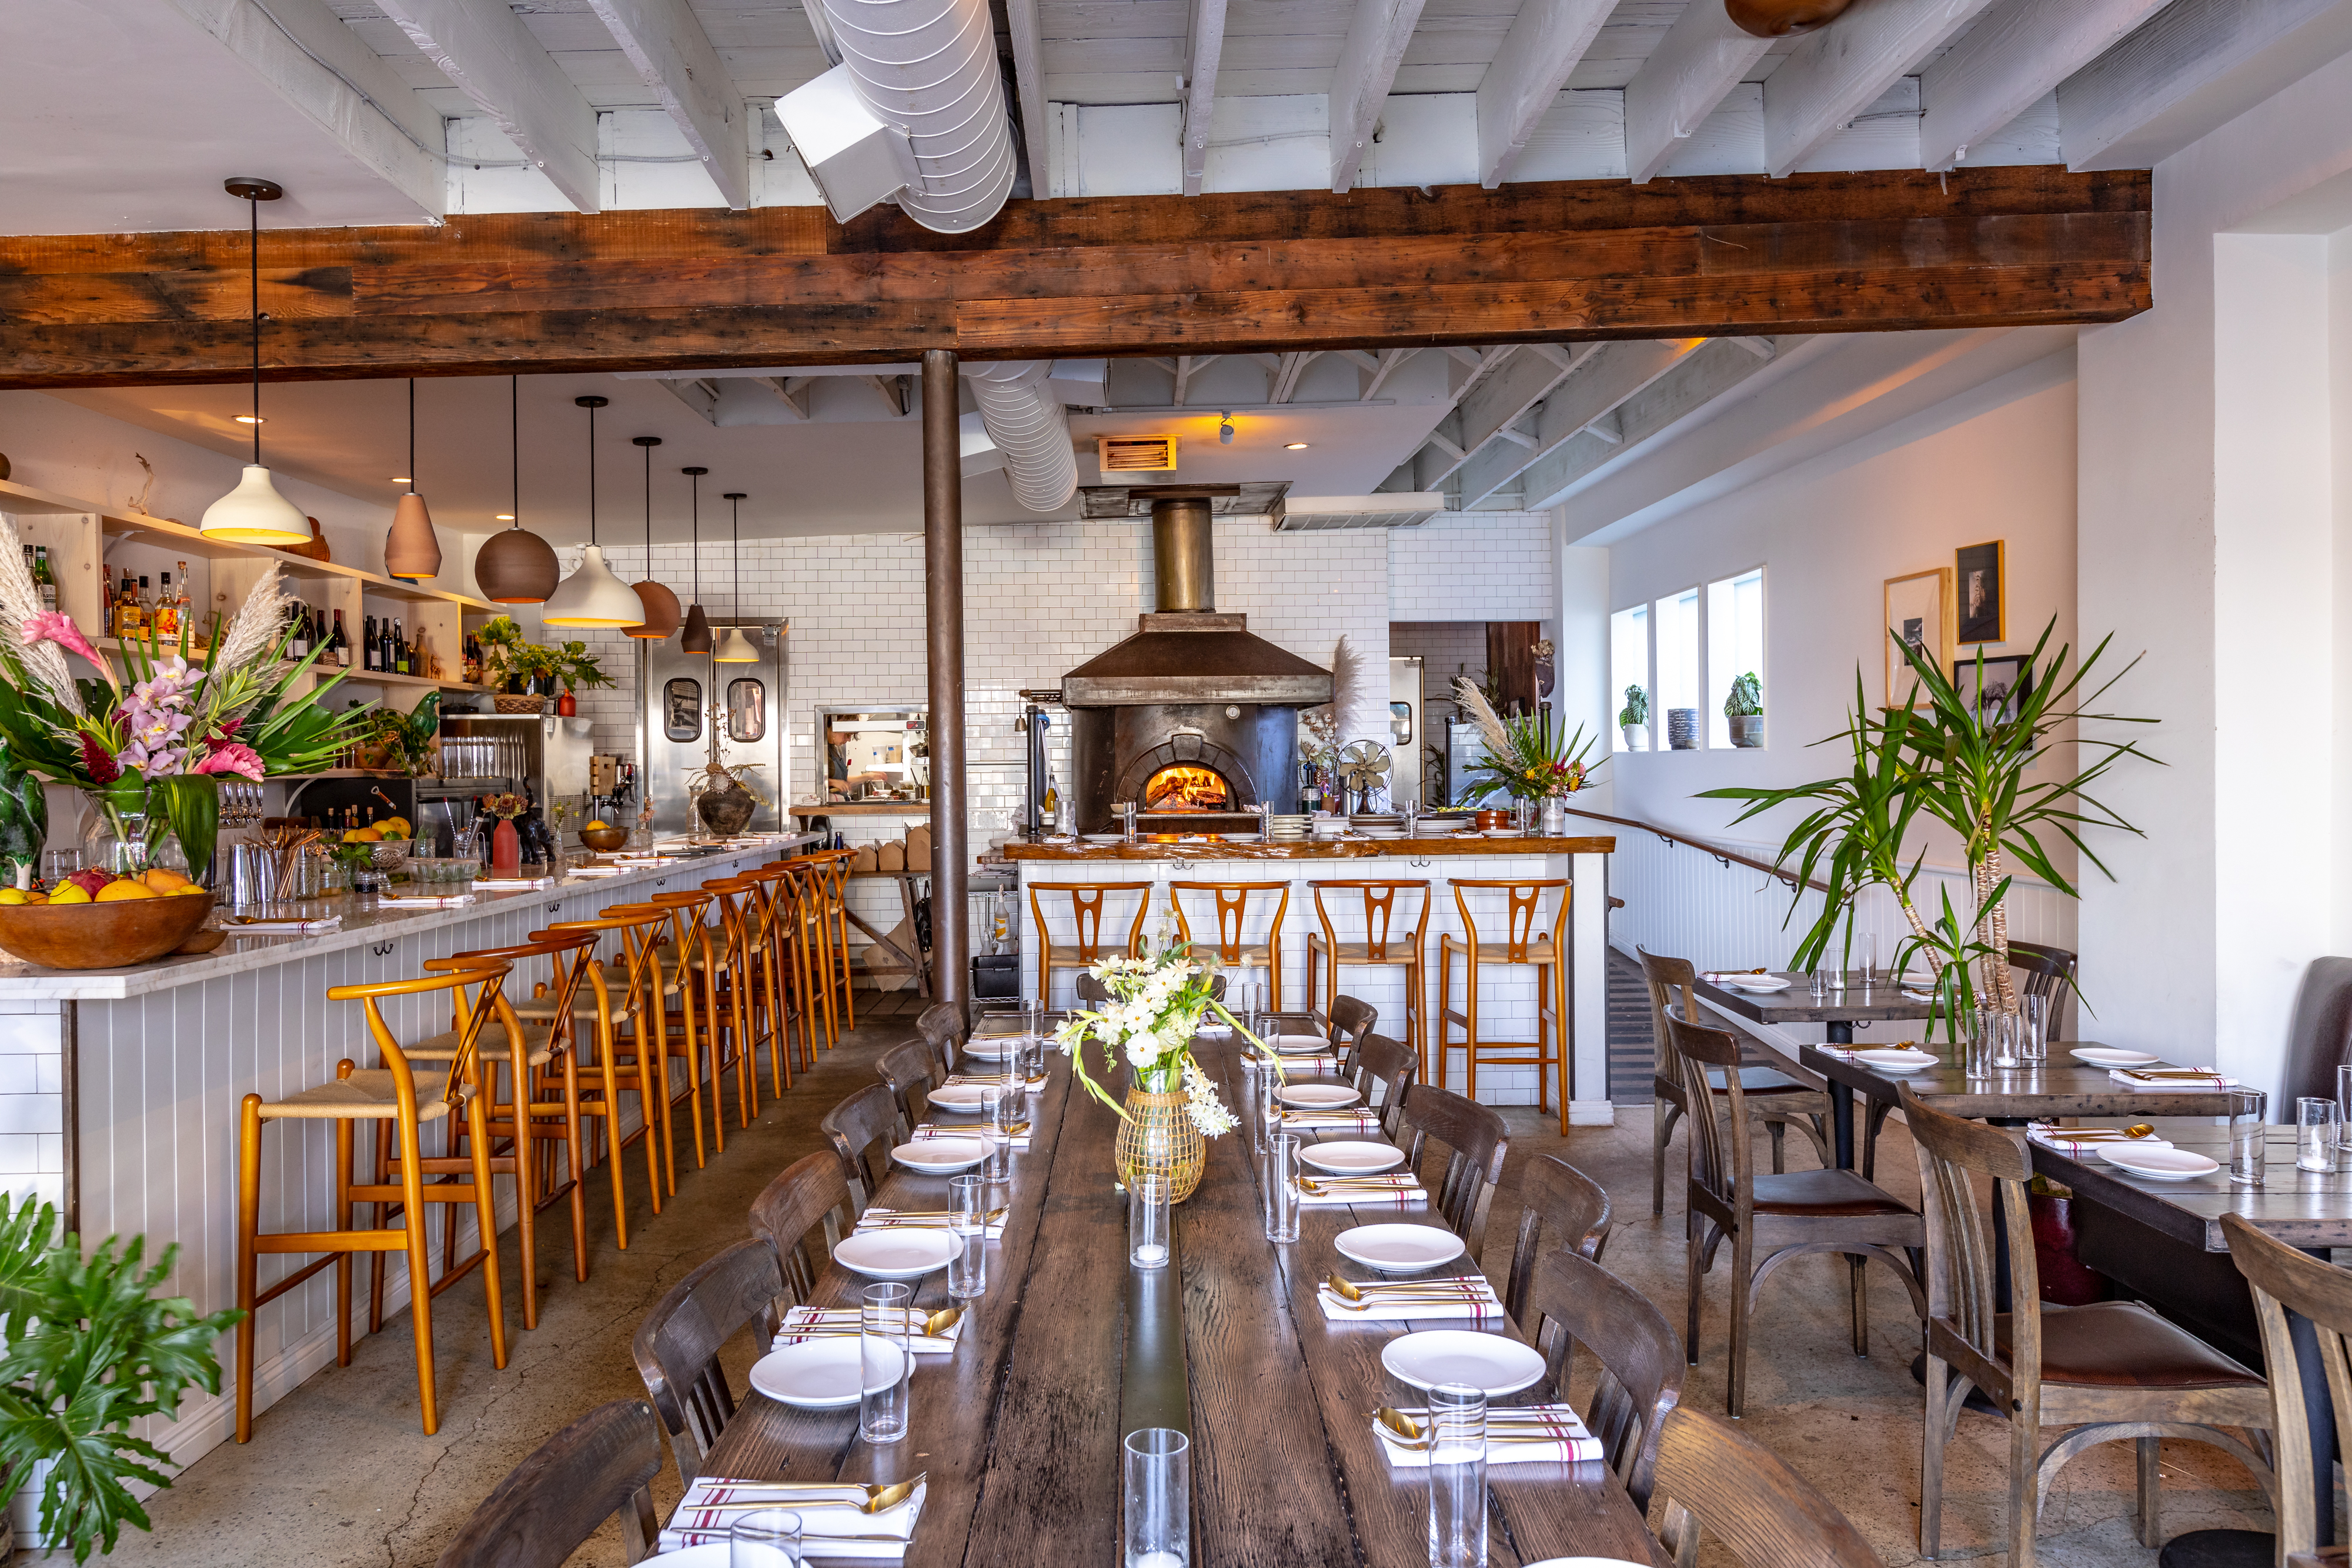 The Best Places To Eat In Santa Monica Santa Monica Los Angeles The Infatuation